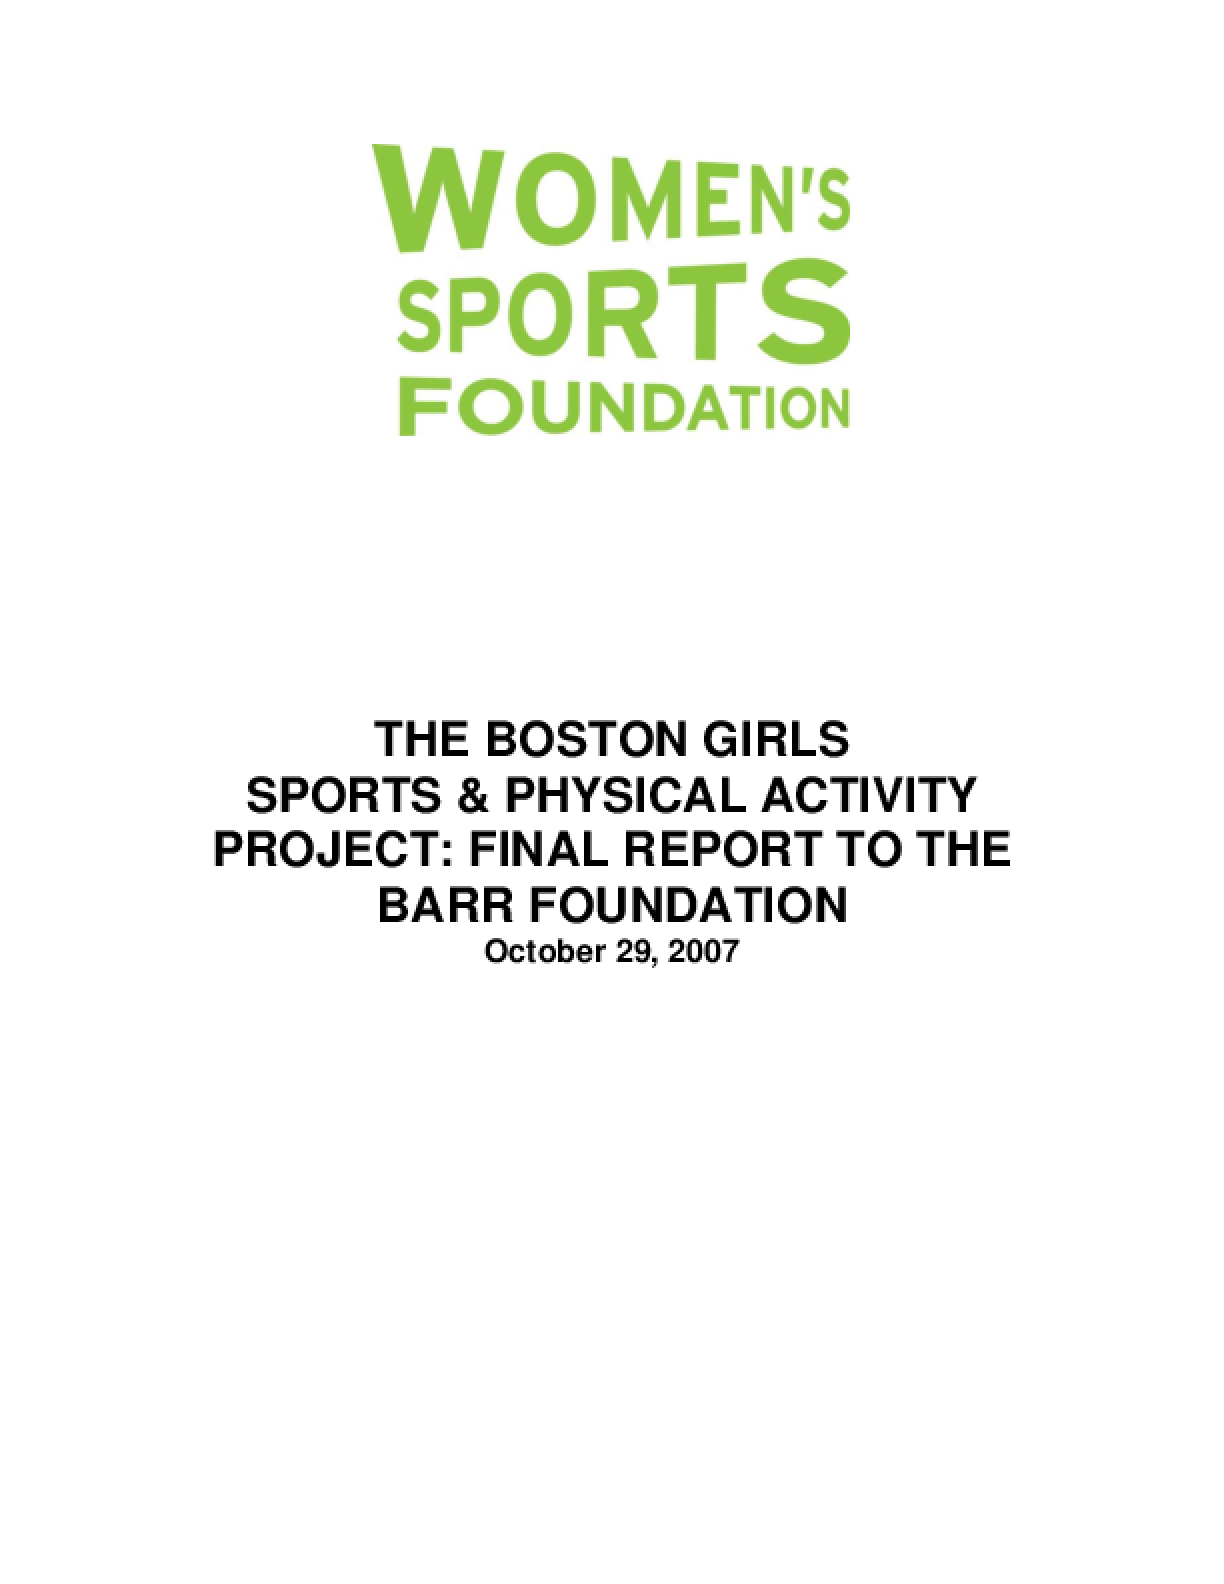 The Boston Girls Sports & Physical Activity Project: Final Report to the Barr Foundation